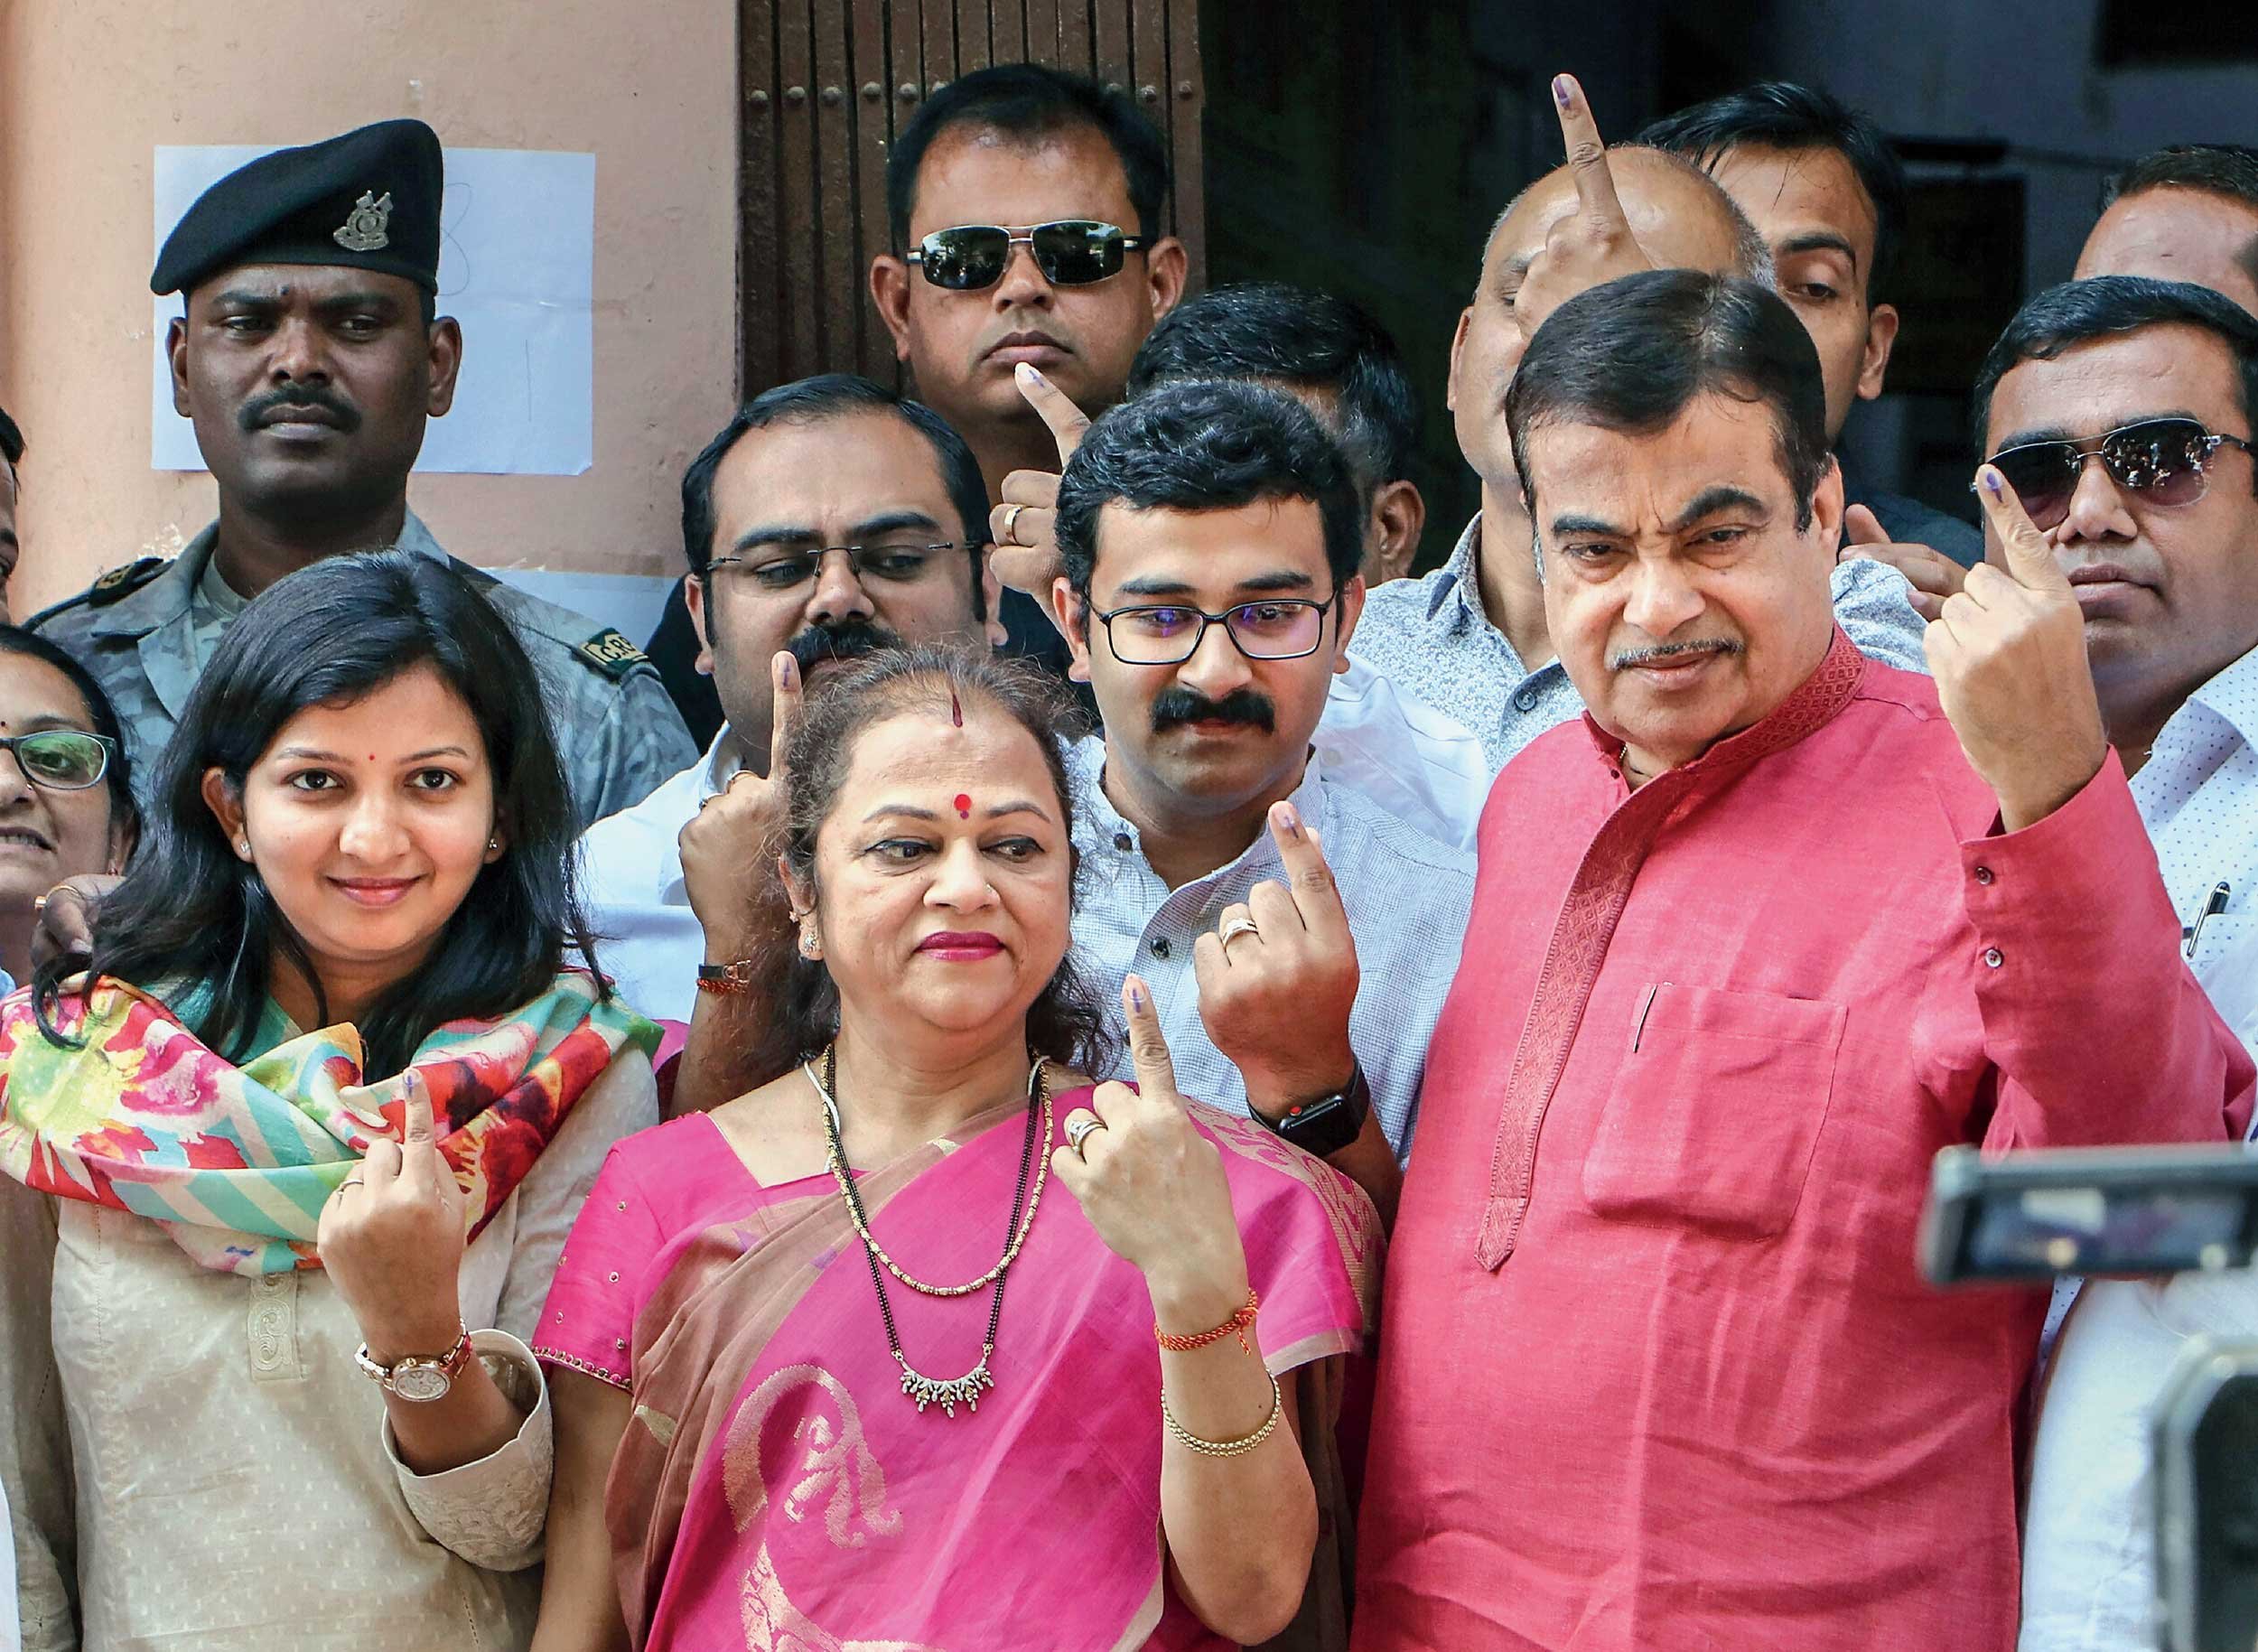 Union minister and BJP Nagpur candidate Nitin Gadkari with his family members.